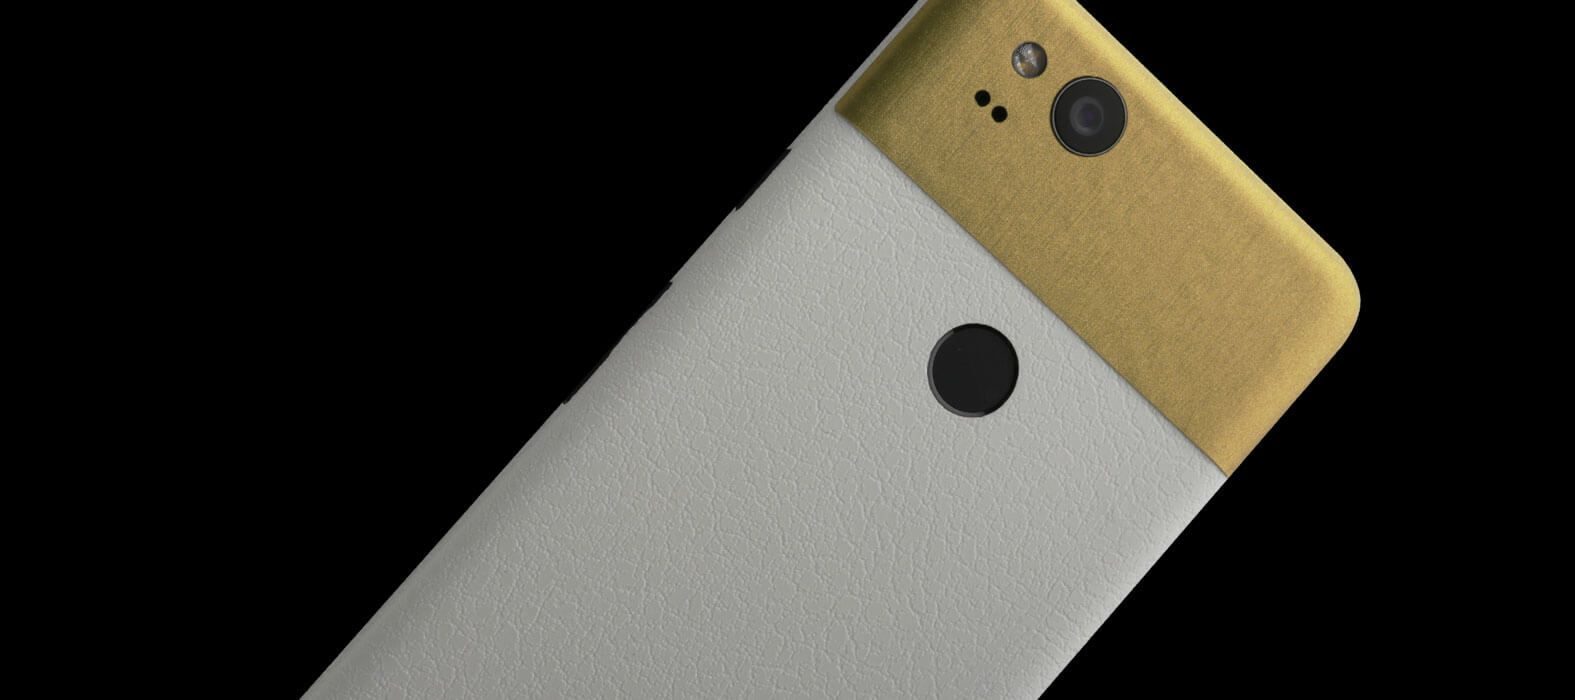 Pixel 2 Wraps, Skins, Decals - White Leather